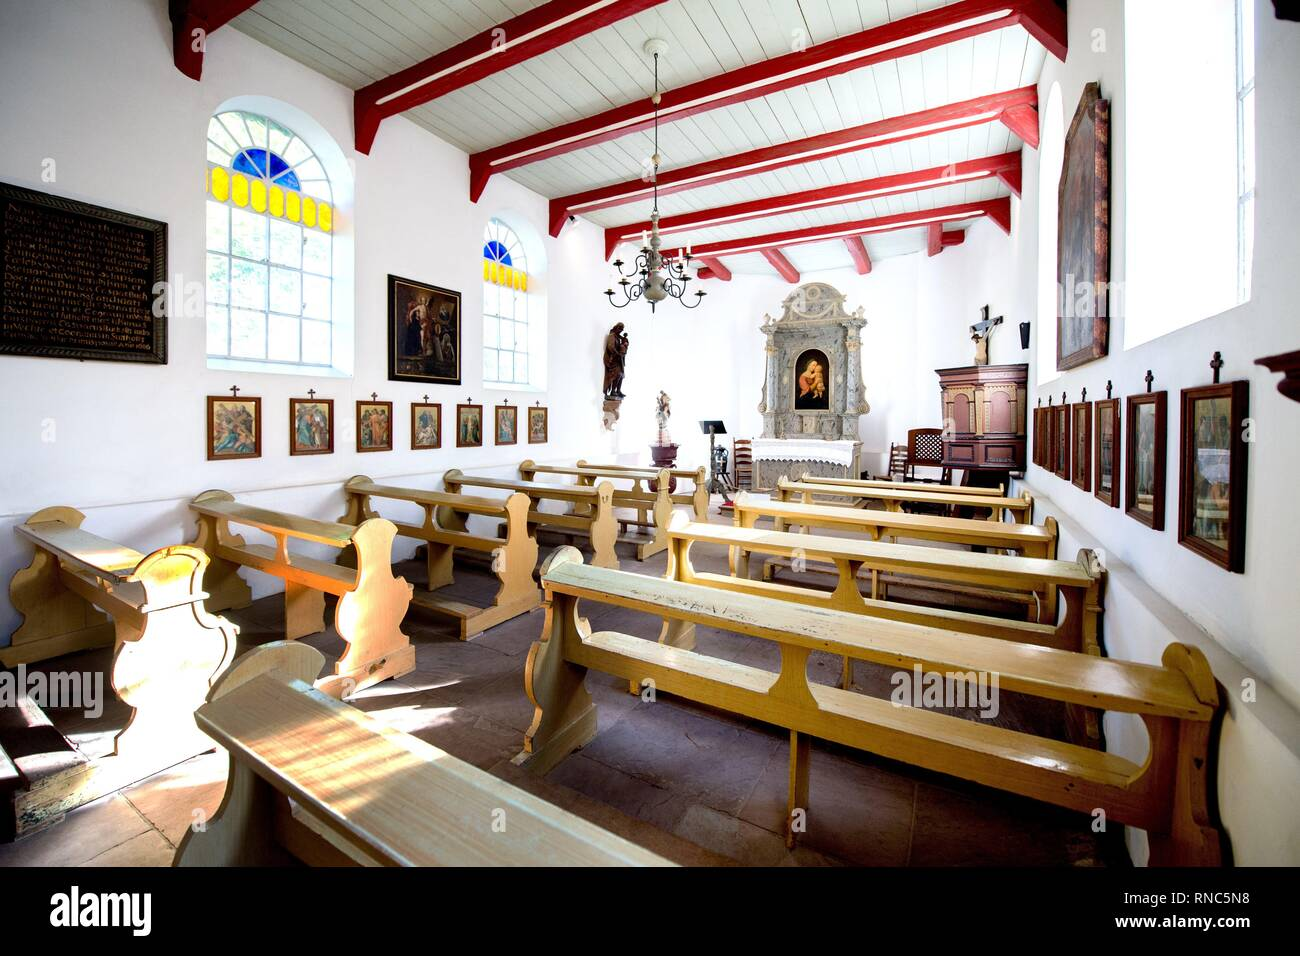 Interior of a historic church at the museum village in Cloppenburg (Germany), 31 October 2018. | usage worldwide - Stock Image